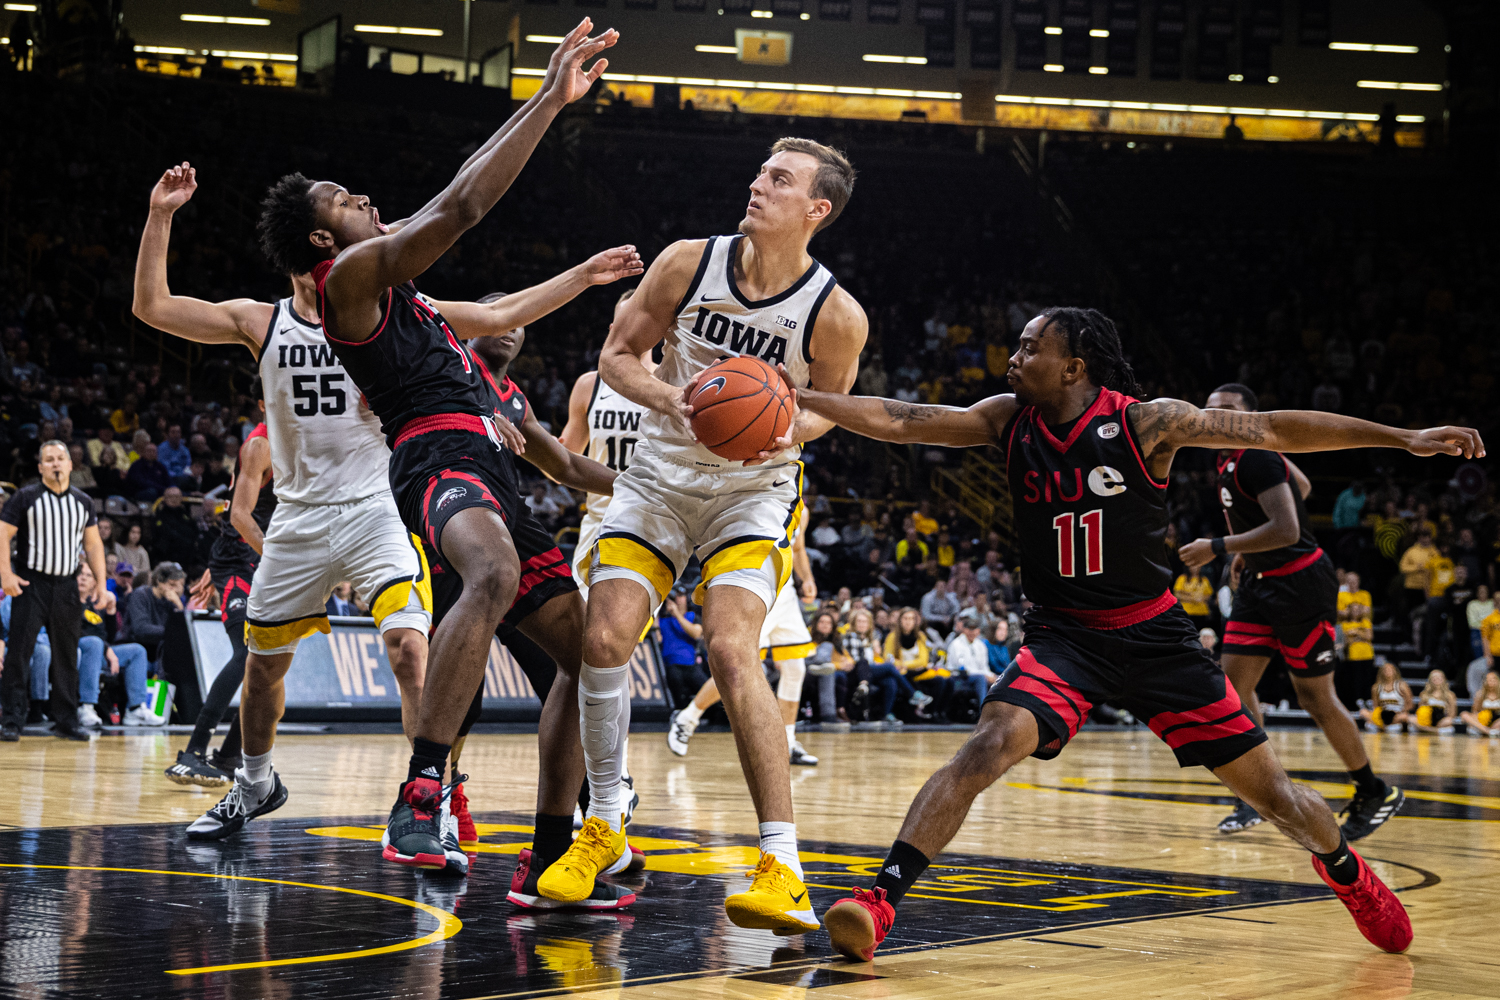 Iowa forward Jack Nunge handles the ball during a men's basketball game between Iowa and Southern Illinois-Edwardsville at Carver-Hawkeye Arena on Friday, Nov. 8, 2019. Nunge scored 2 points and had 2 assists in the win.